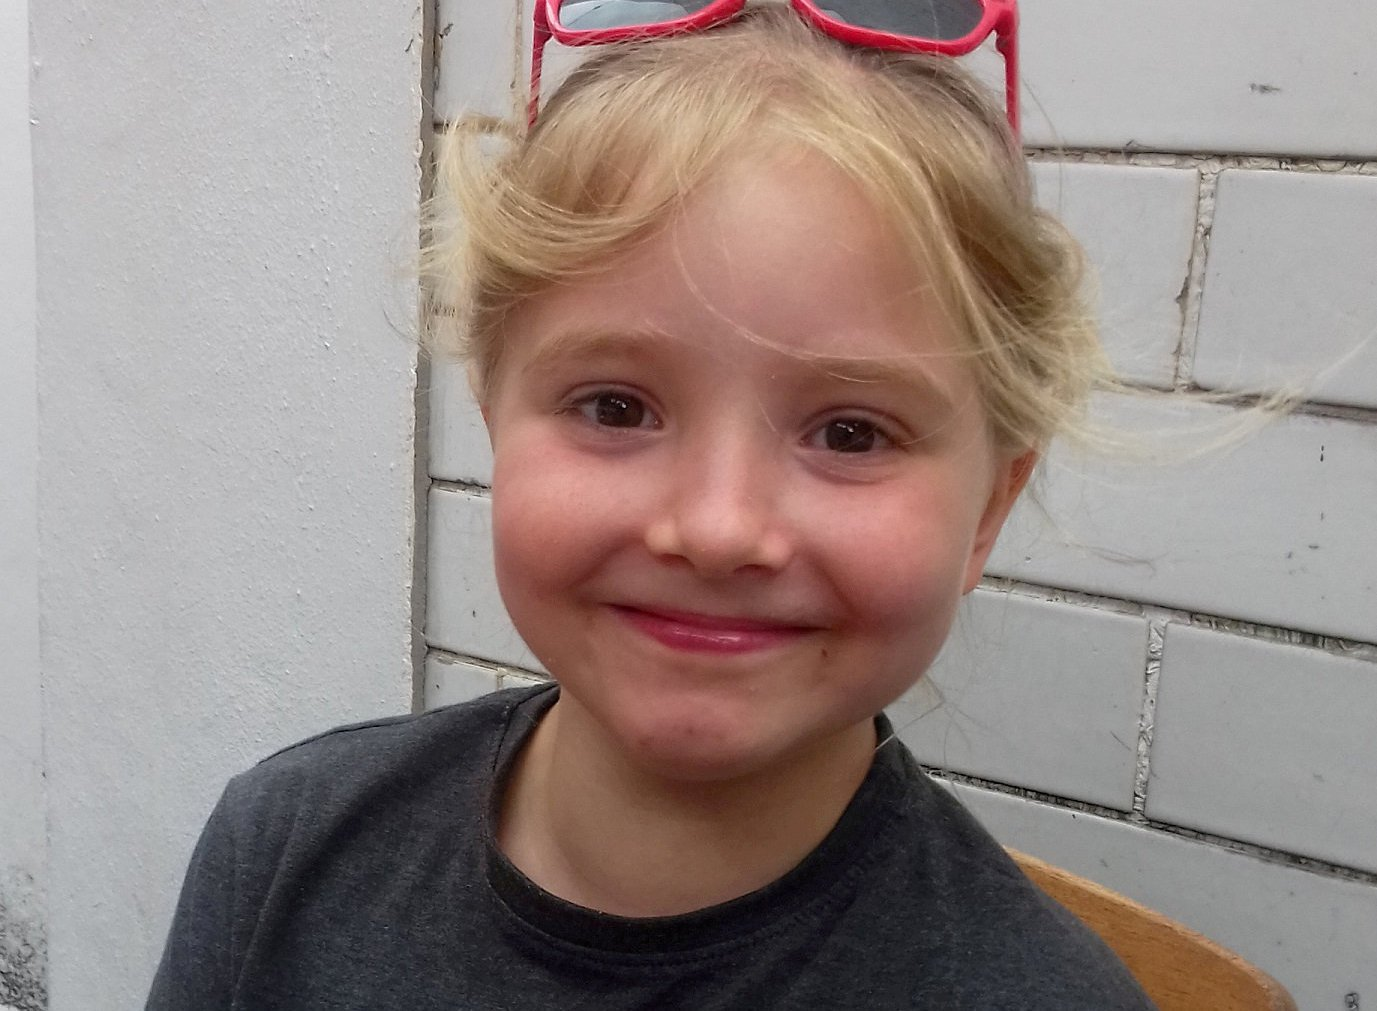 Police hand out of Harriet Emily Nicola Forster, aged 9.See Ross Parry story SWLErocks; Inquest into 9yo girl who tragically died from serious head injuries when rocks fell from a cliff on North Yorks., beach